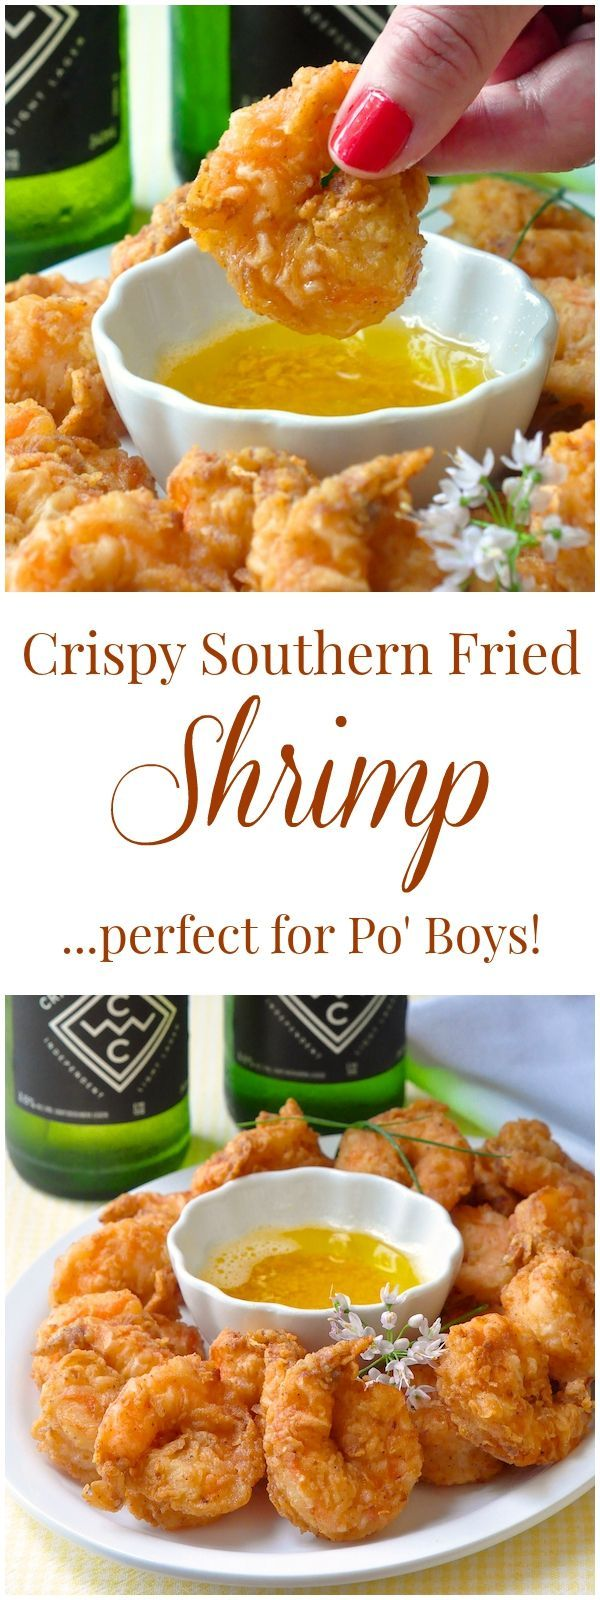 Southern Fried Shrimp Po' Boy